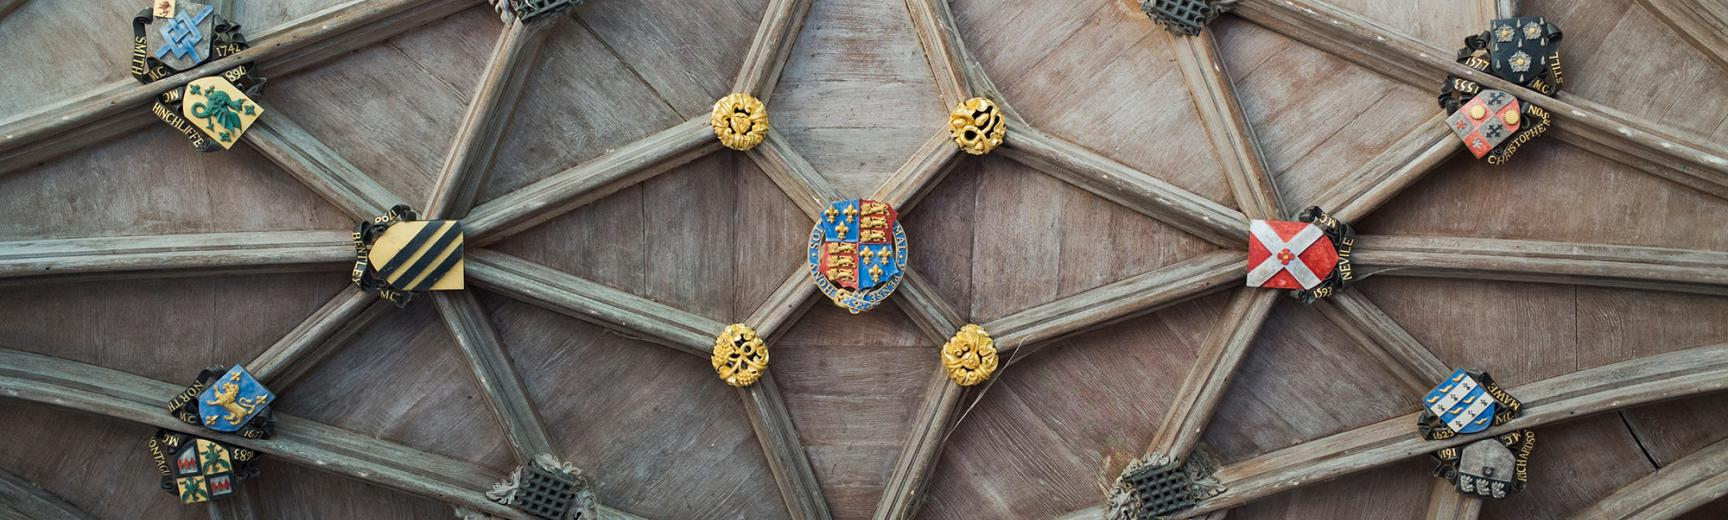 A gothic ceiling decoration at the University of Oxford with college coat of arms